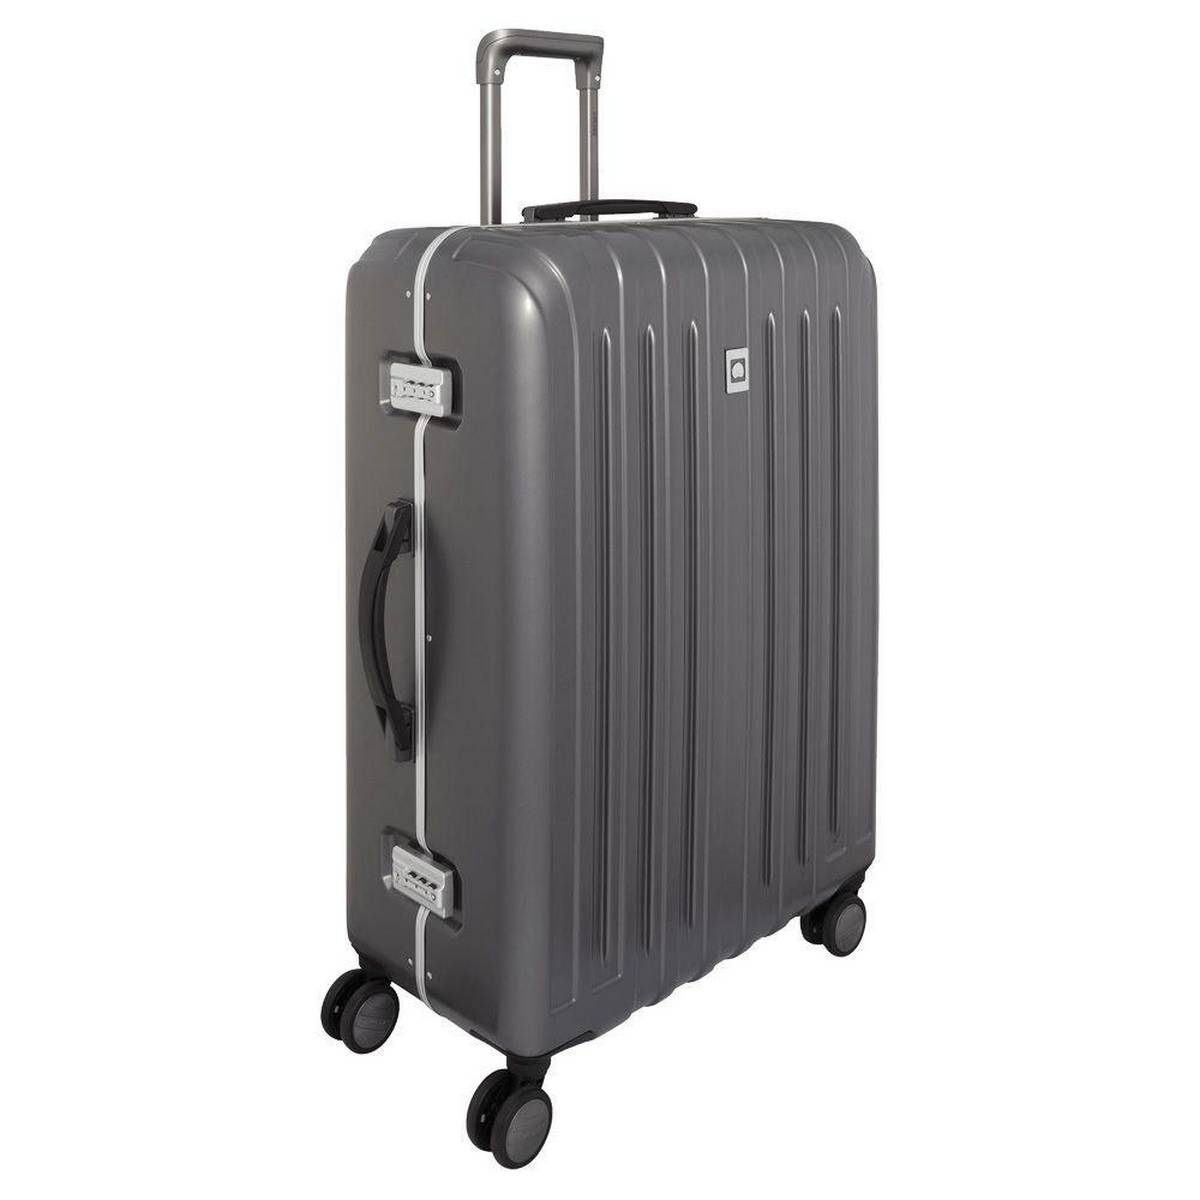 VAVIN SECURITE 77cm/30inches 4W Large Trolley Bag - Grey